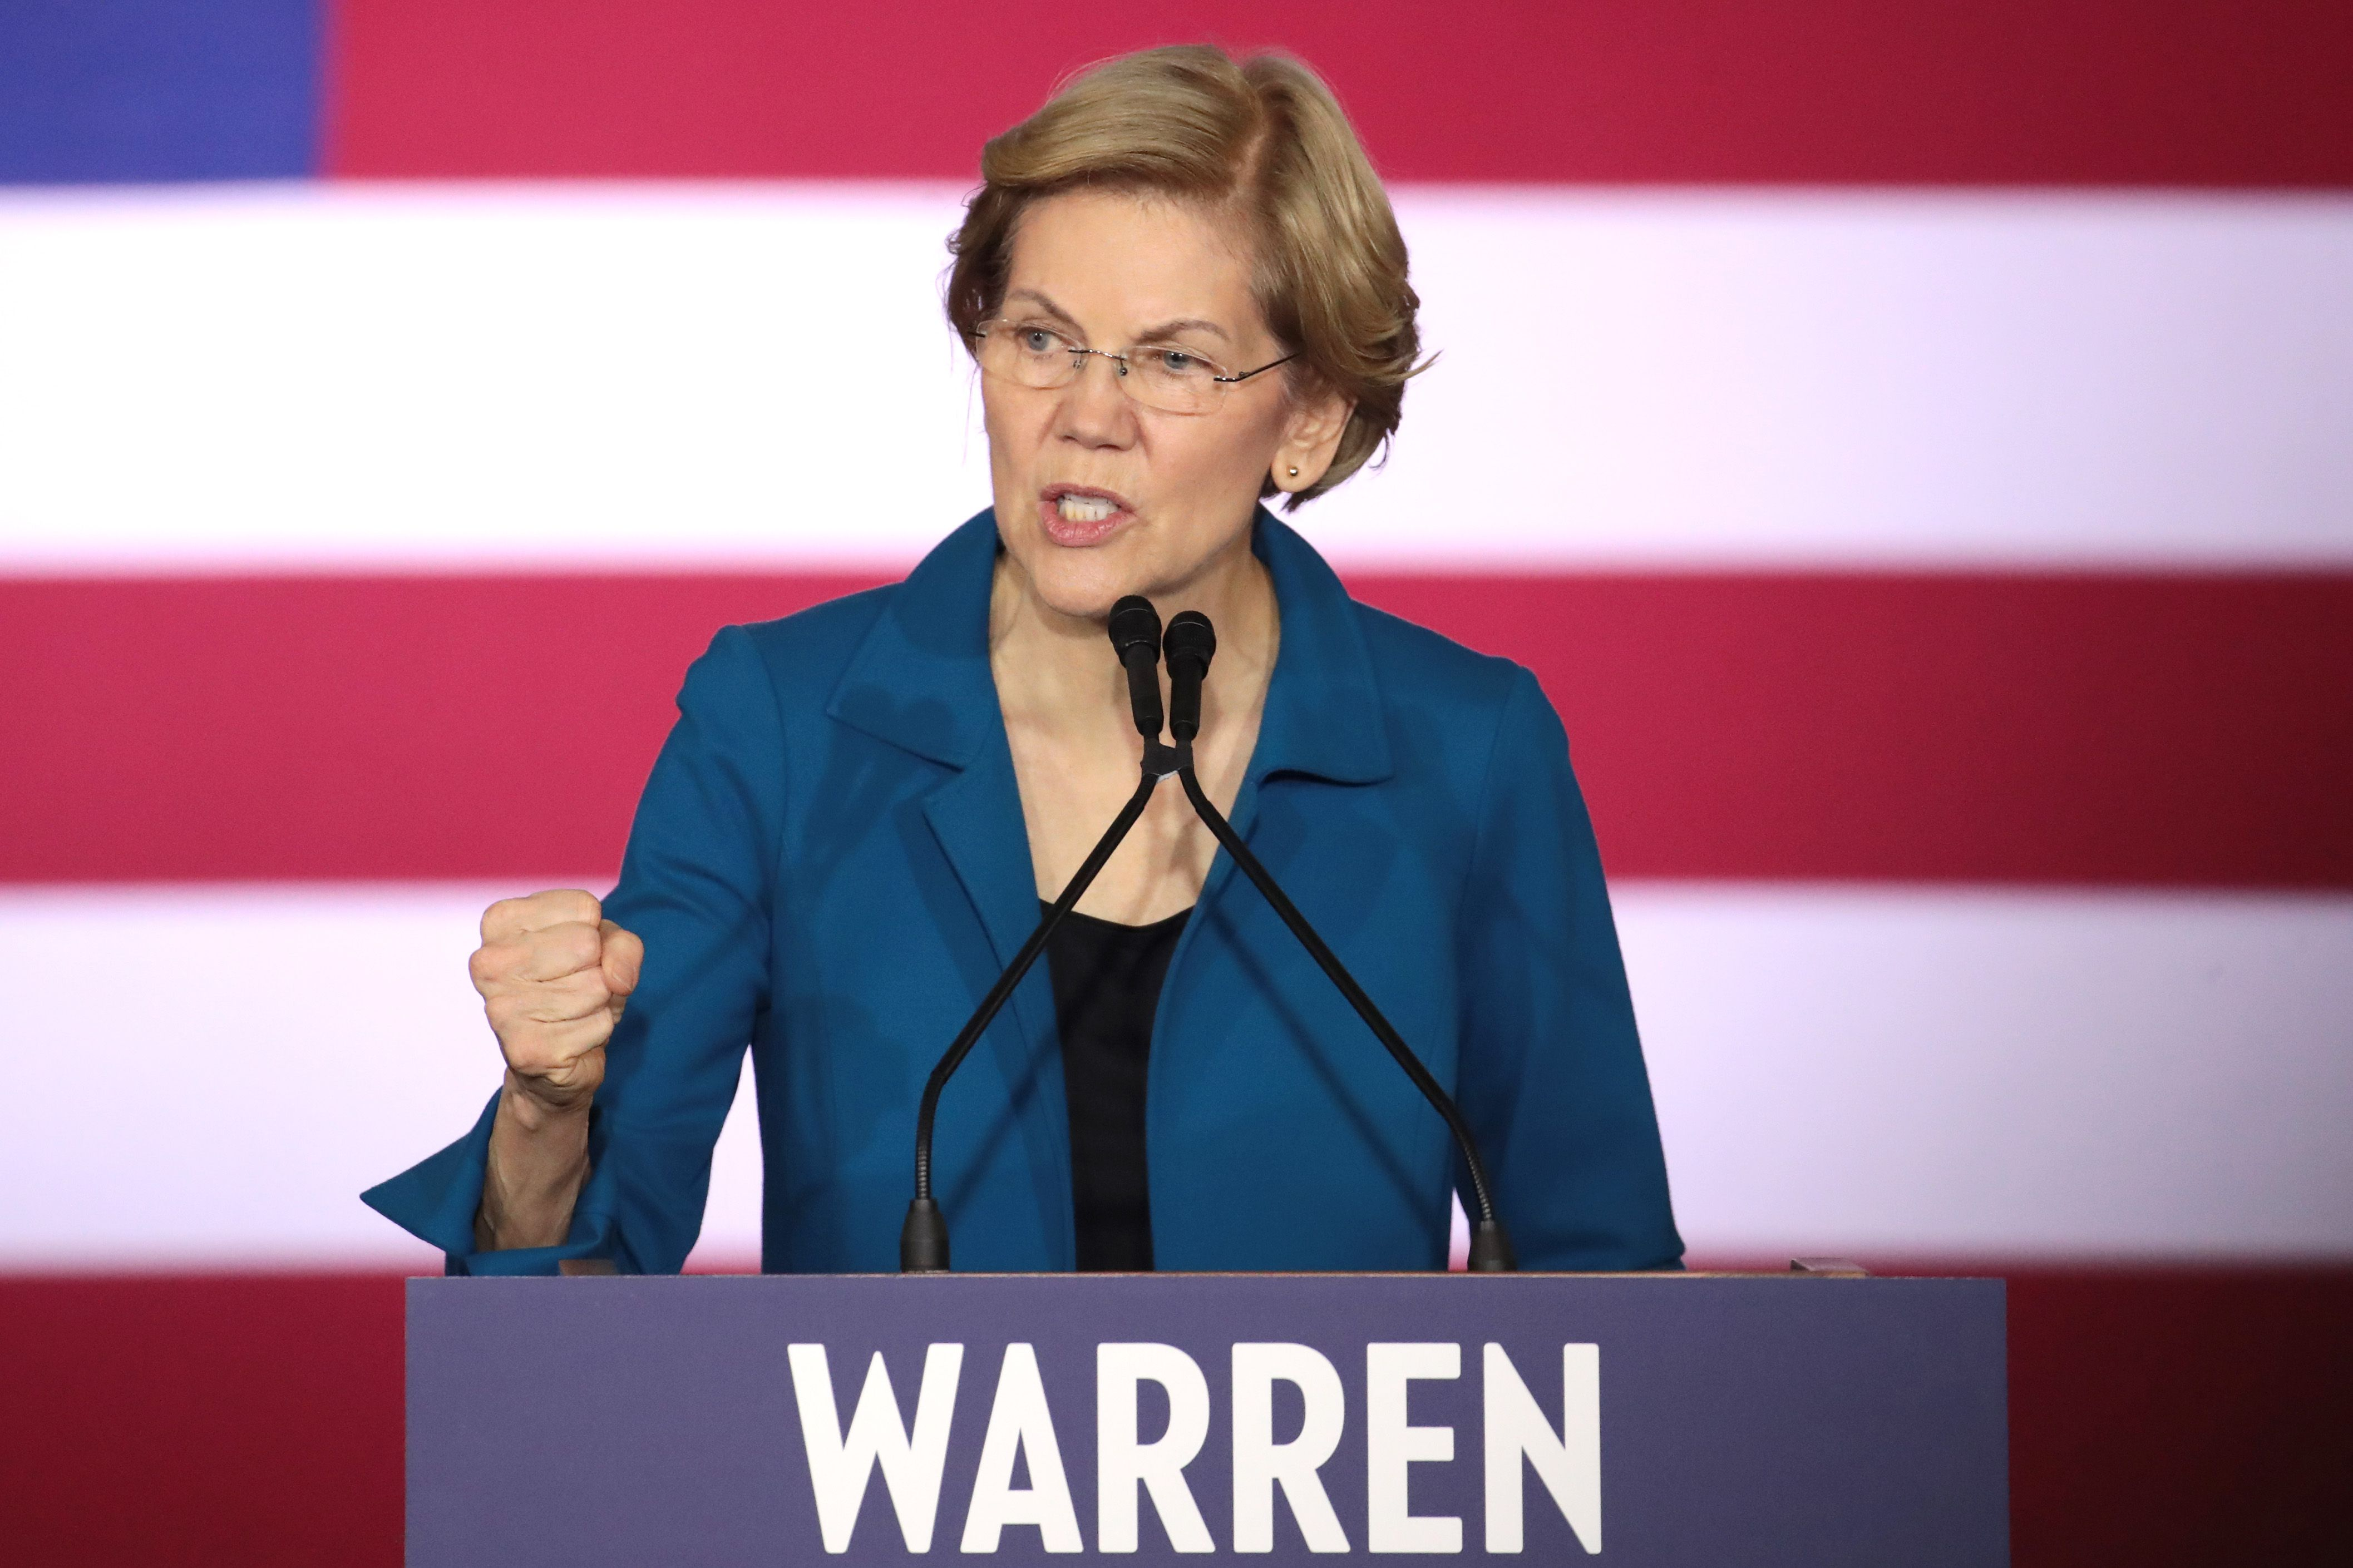 Warren: Barr should resign or face impeachment - Axios